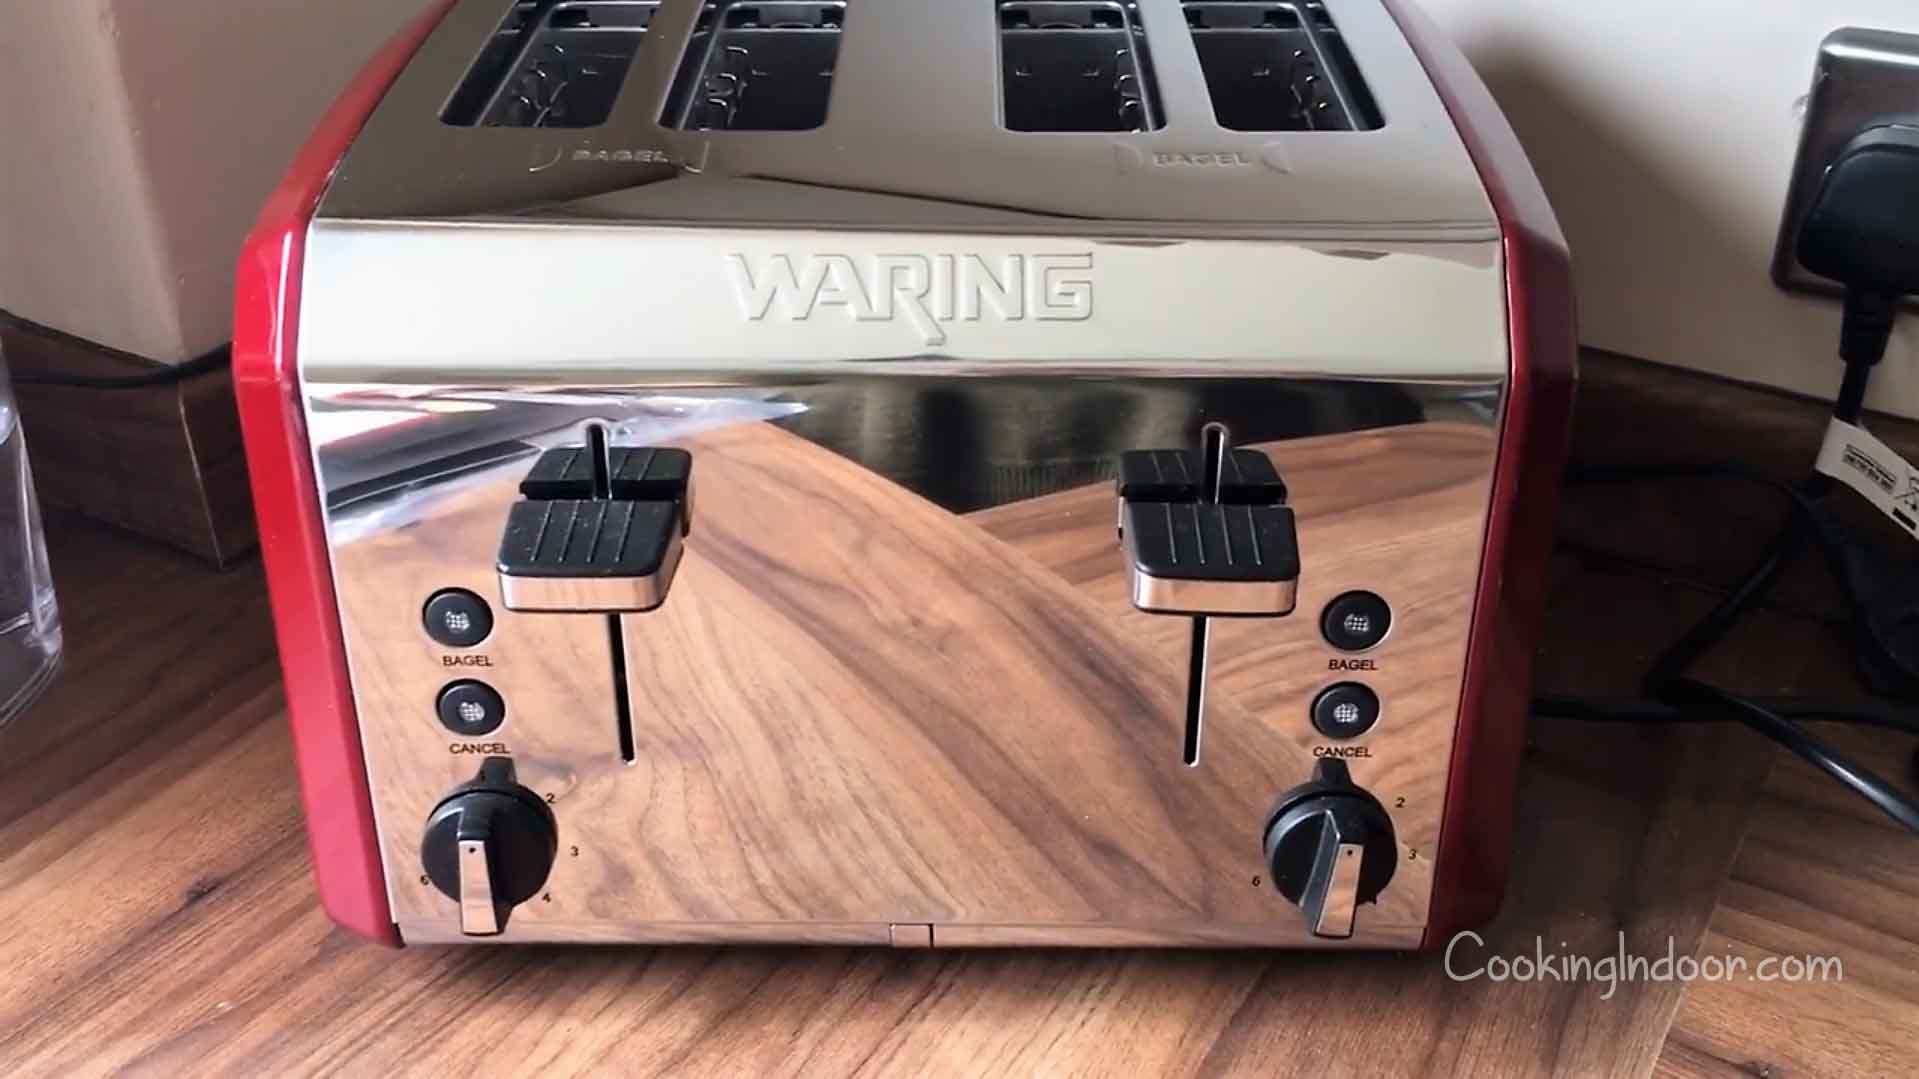 Best professional toaster